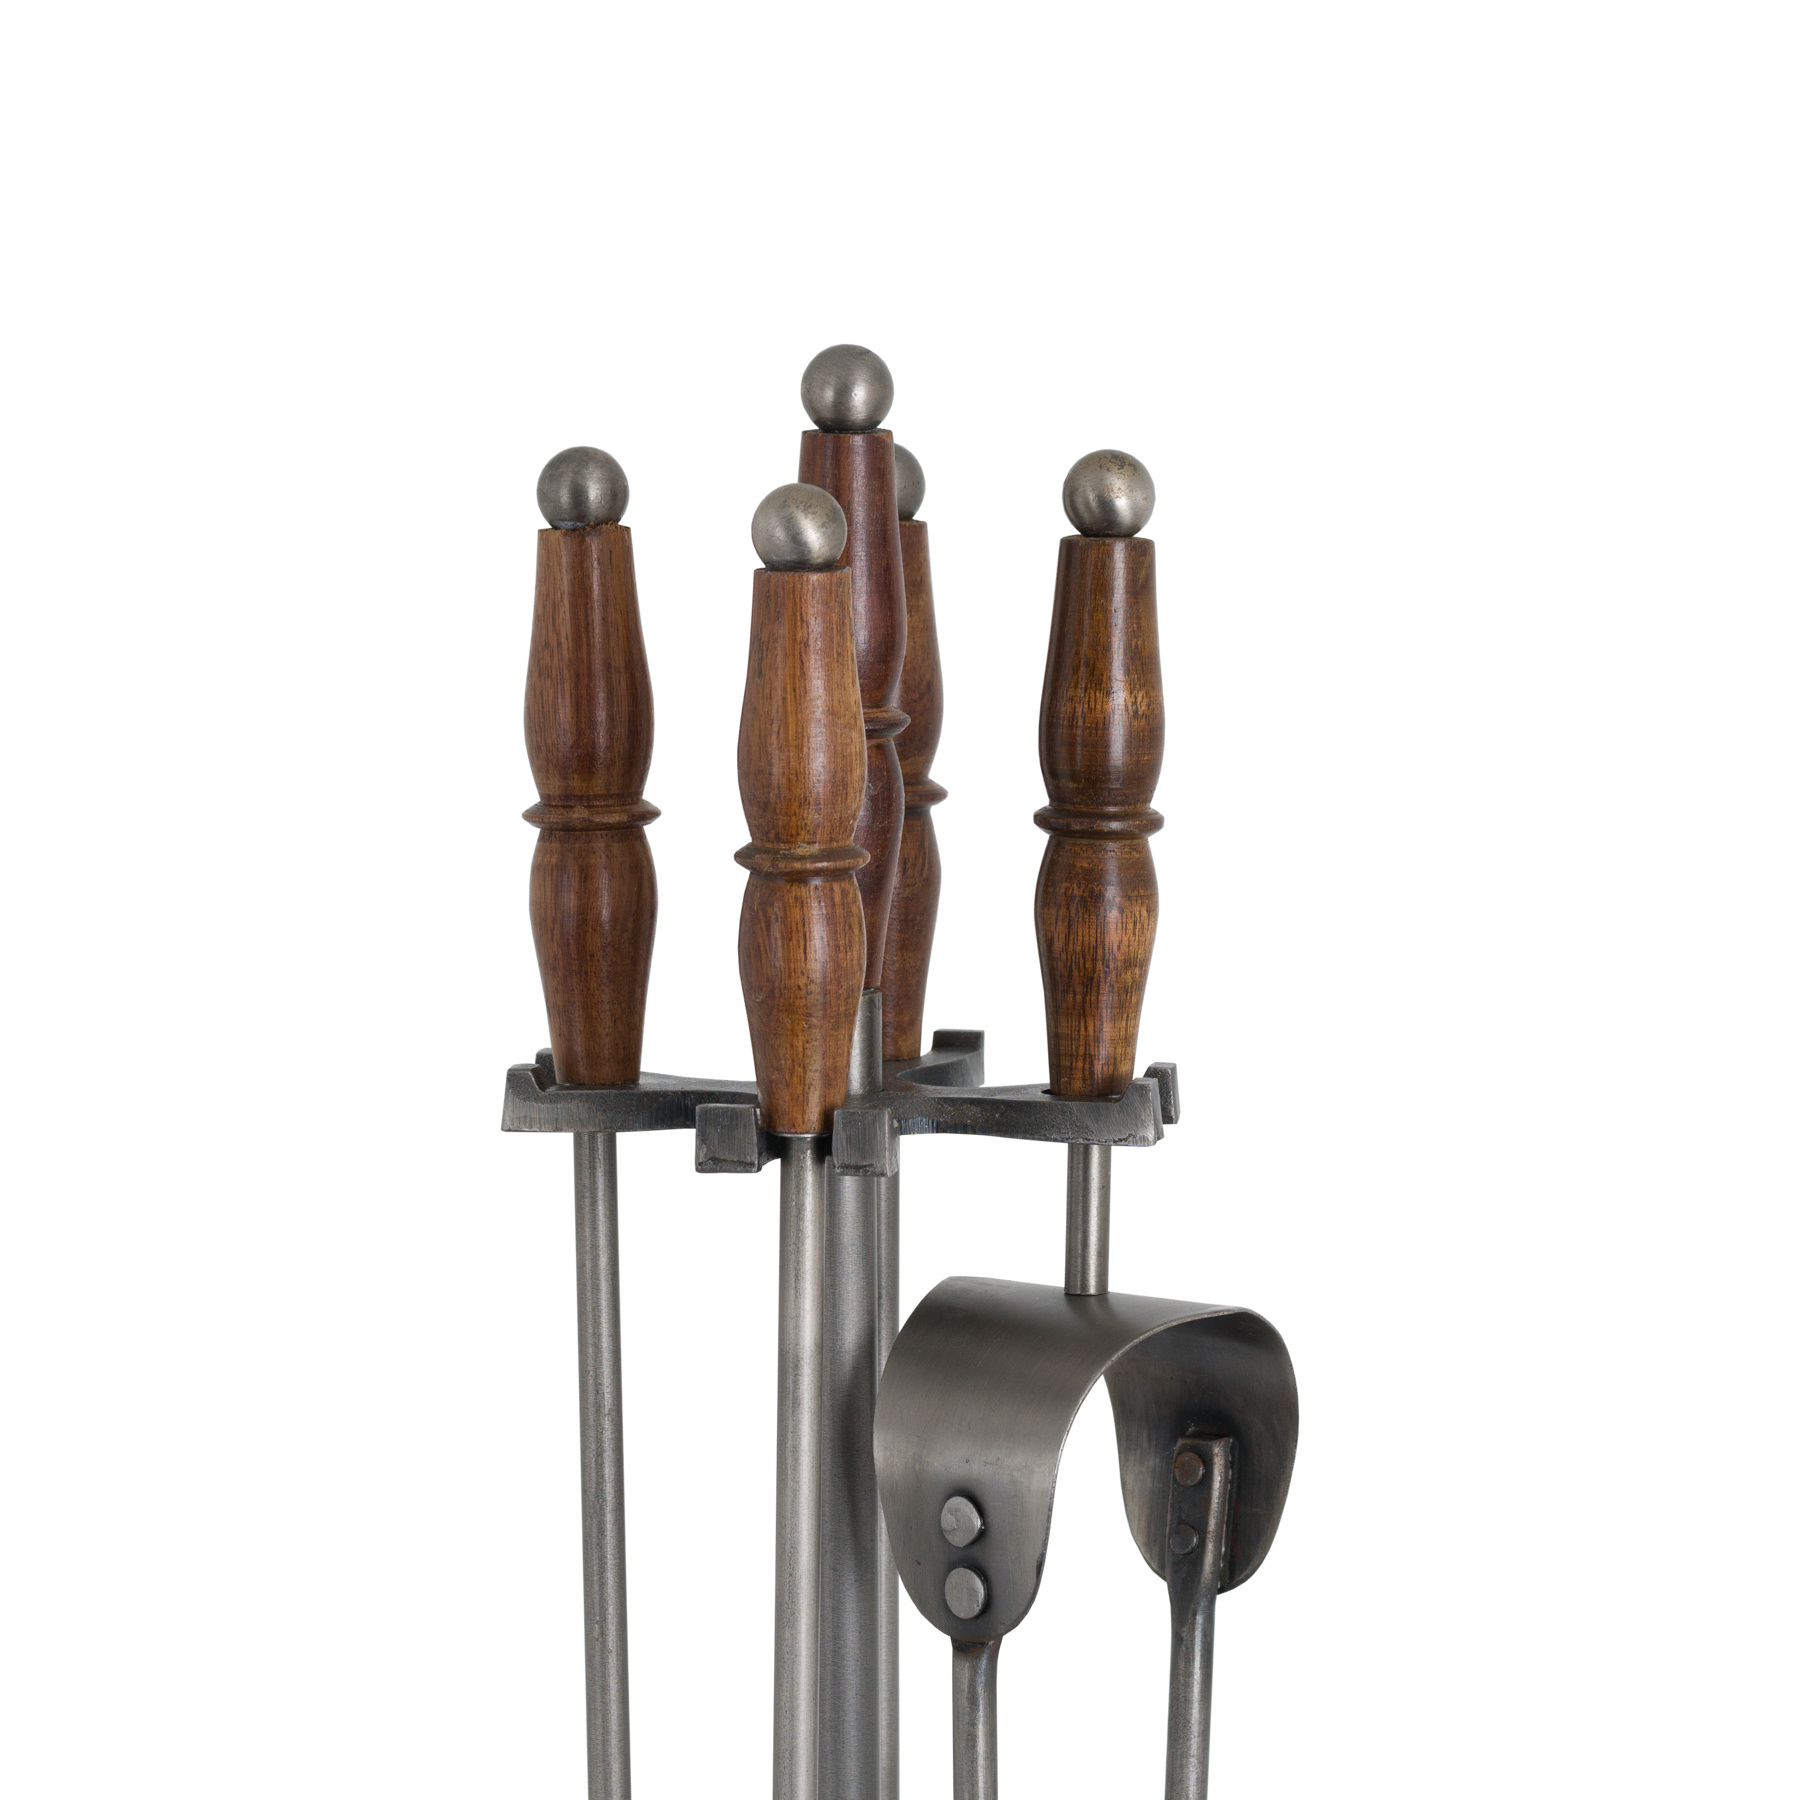 Hill Interiors Hand Turned Fire Companion Set In Antique Pewter With Wooden Handles